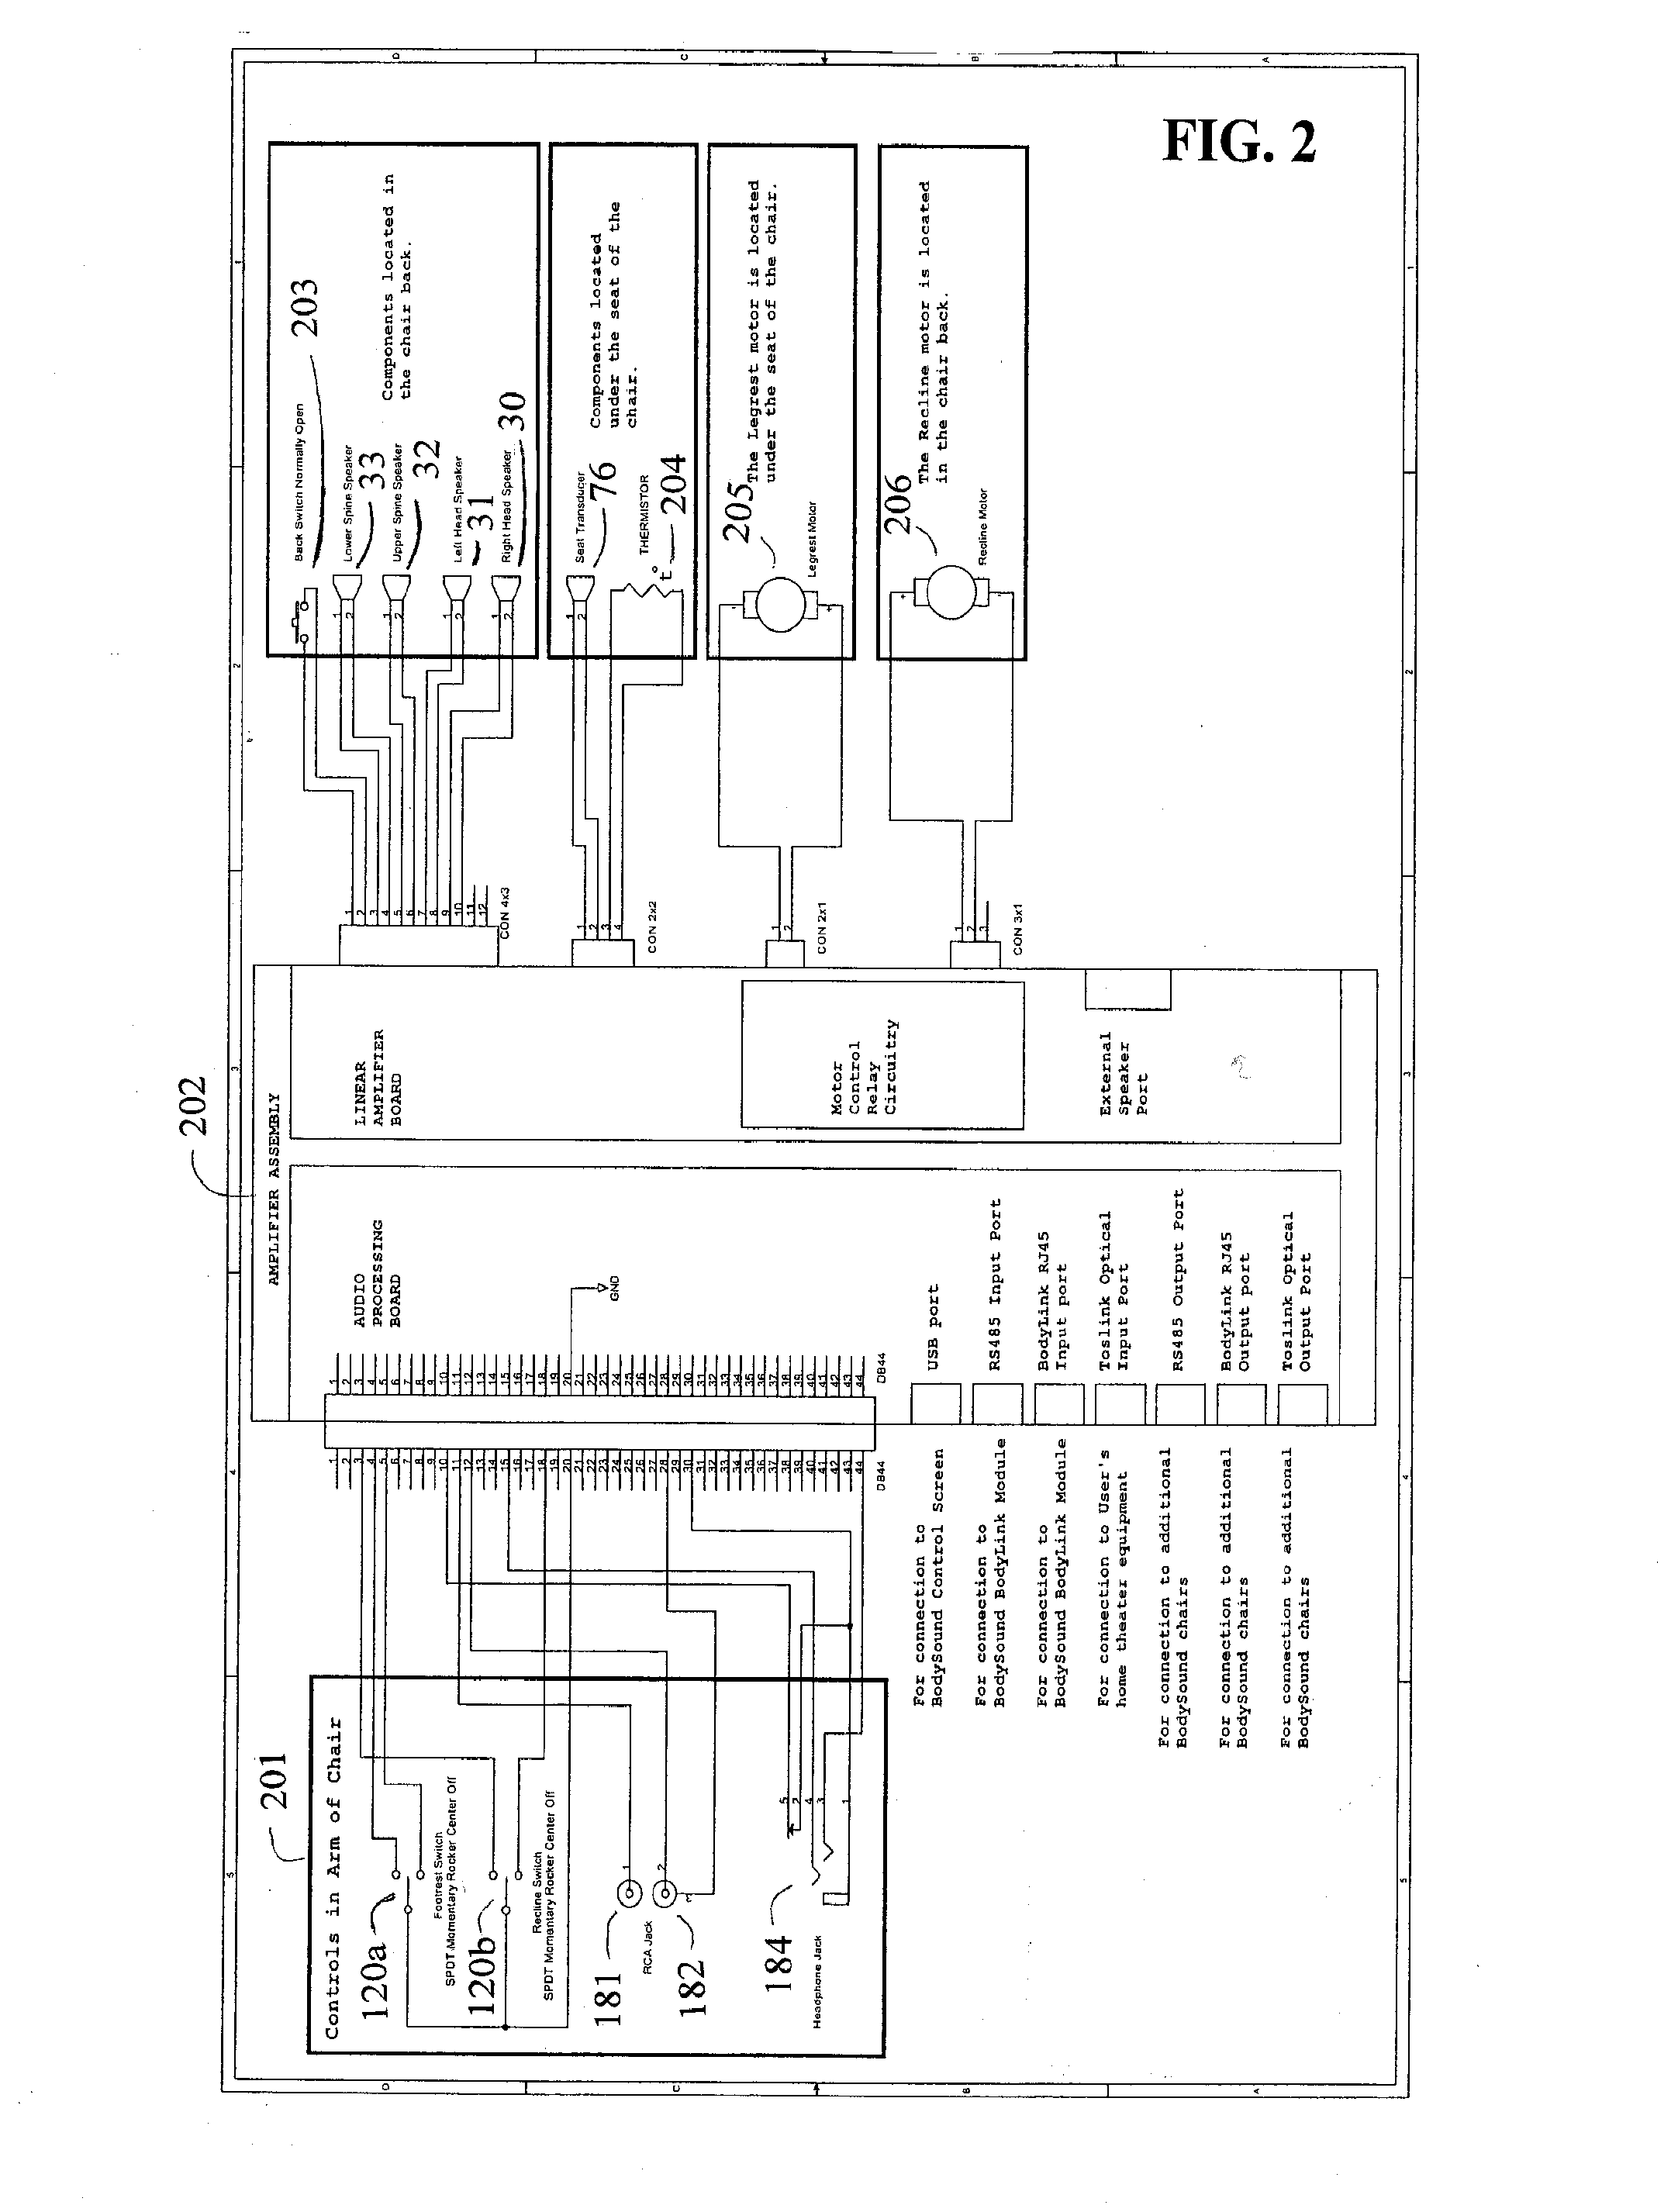 Lexus Is200 Fuel Pump Wiring Diagram Schematics Diagrams Is300 Es330 Fuse Box Auto 2001 87 Chevy Truck